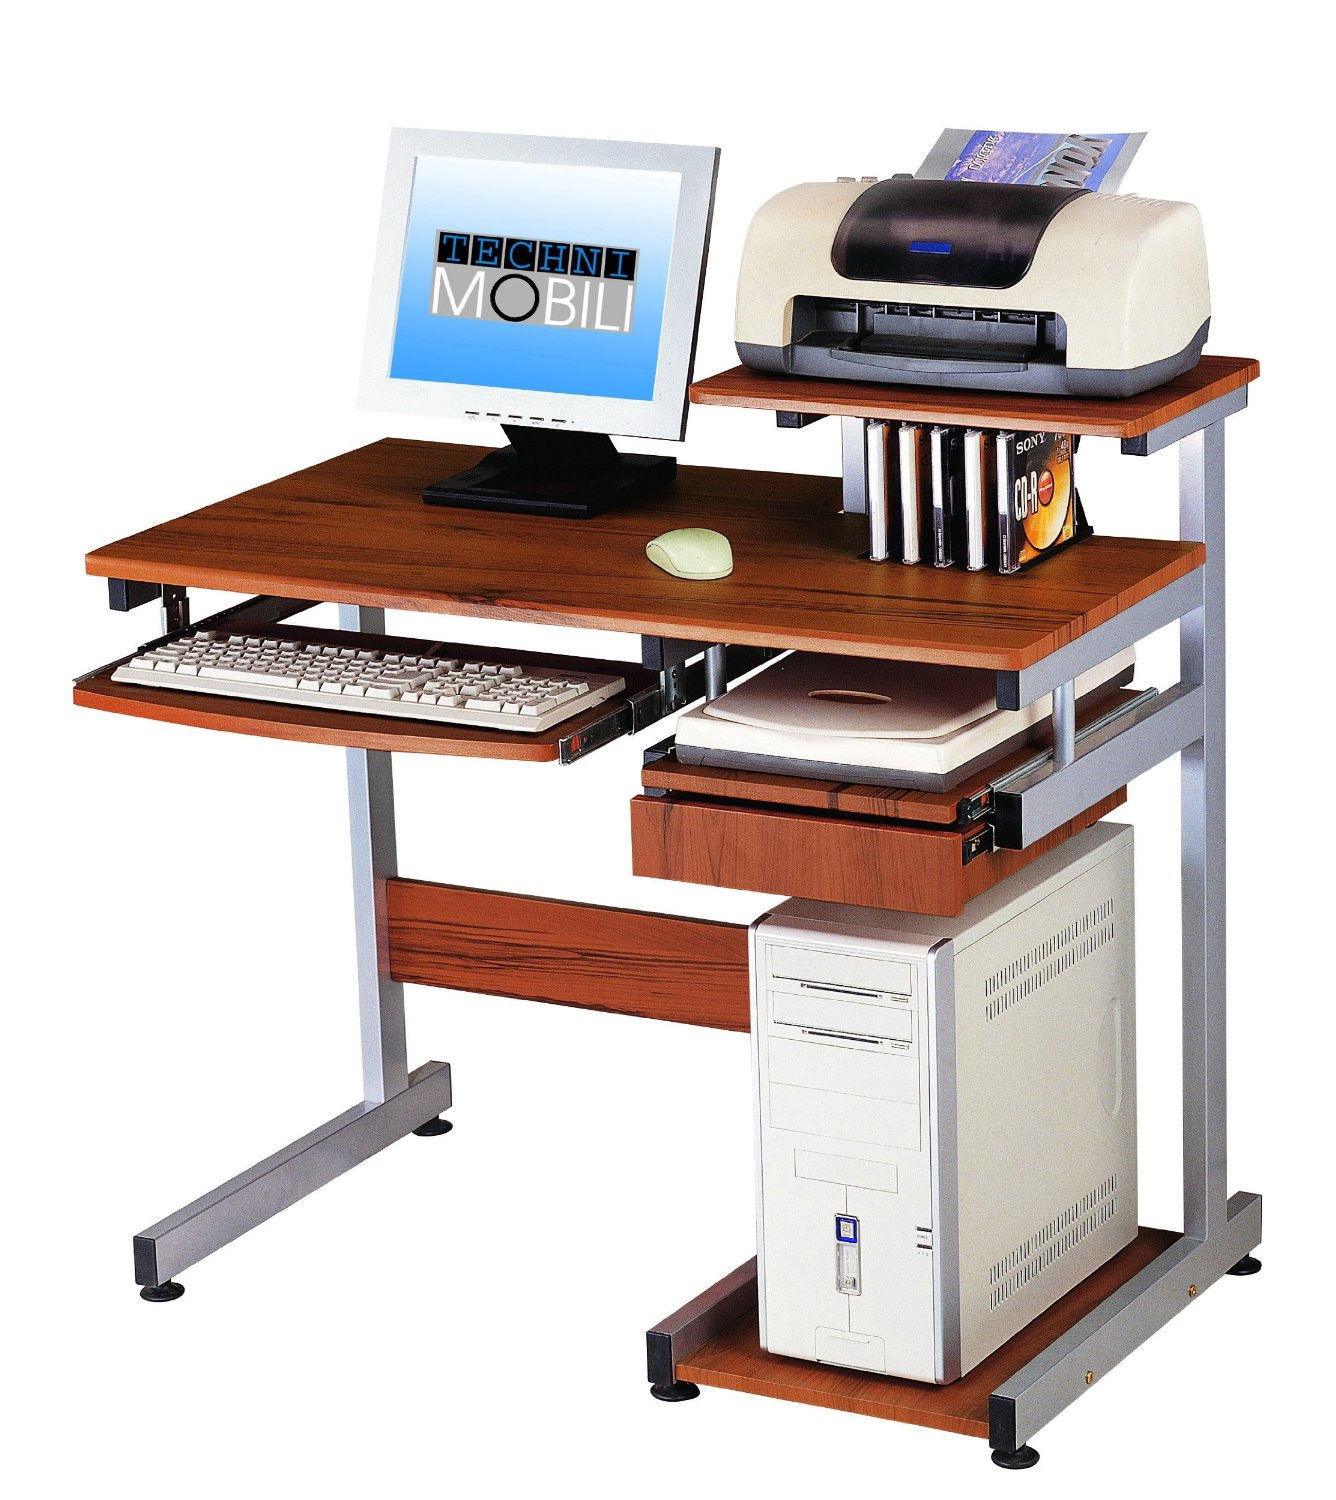 Techni mobili complete media computer desk home office for Mobili office